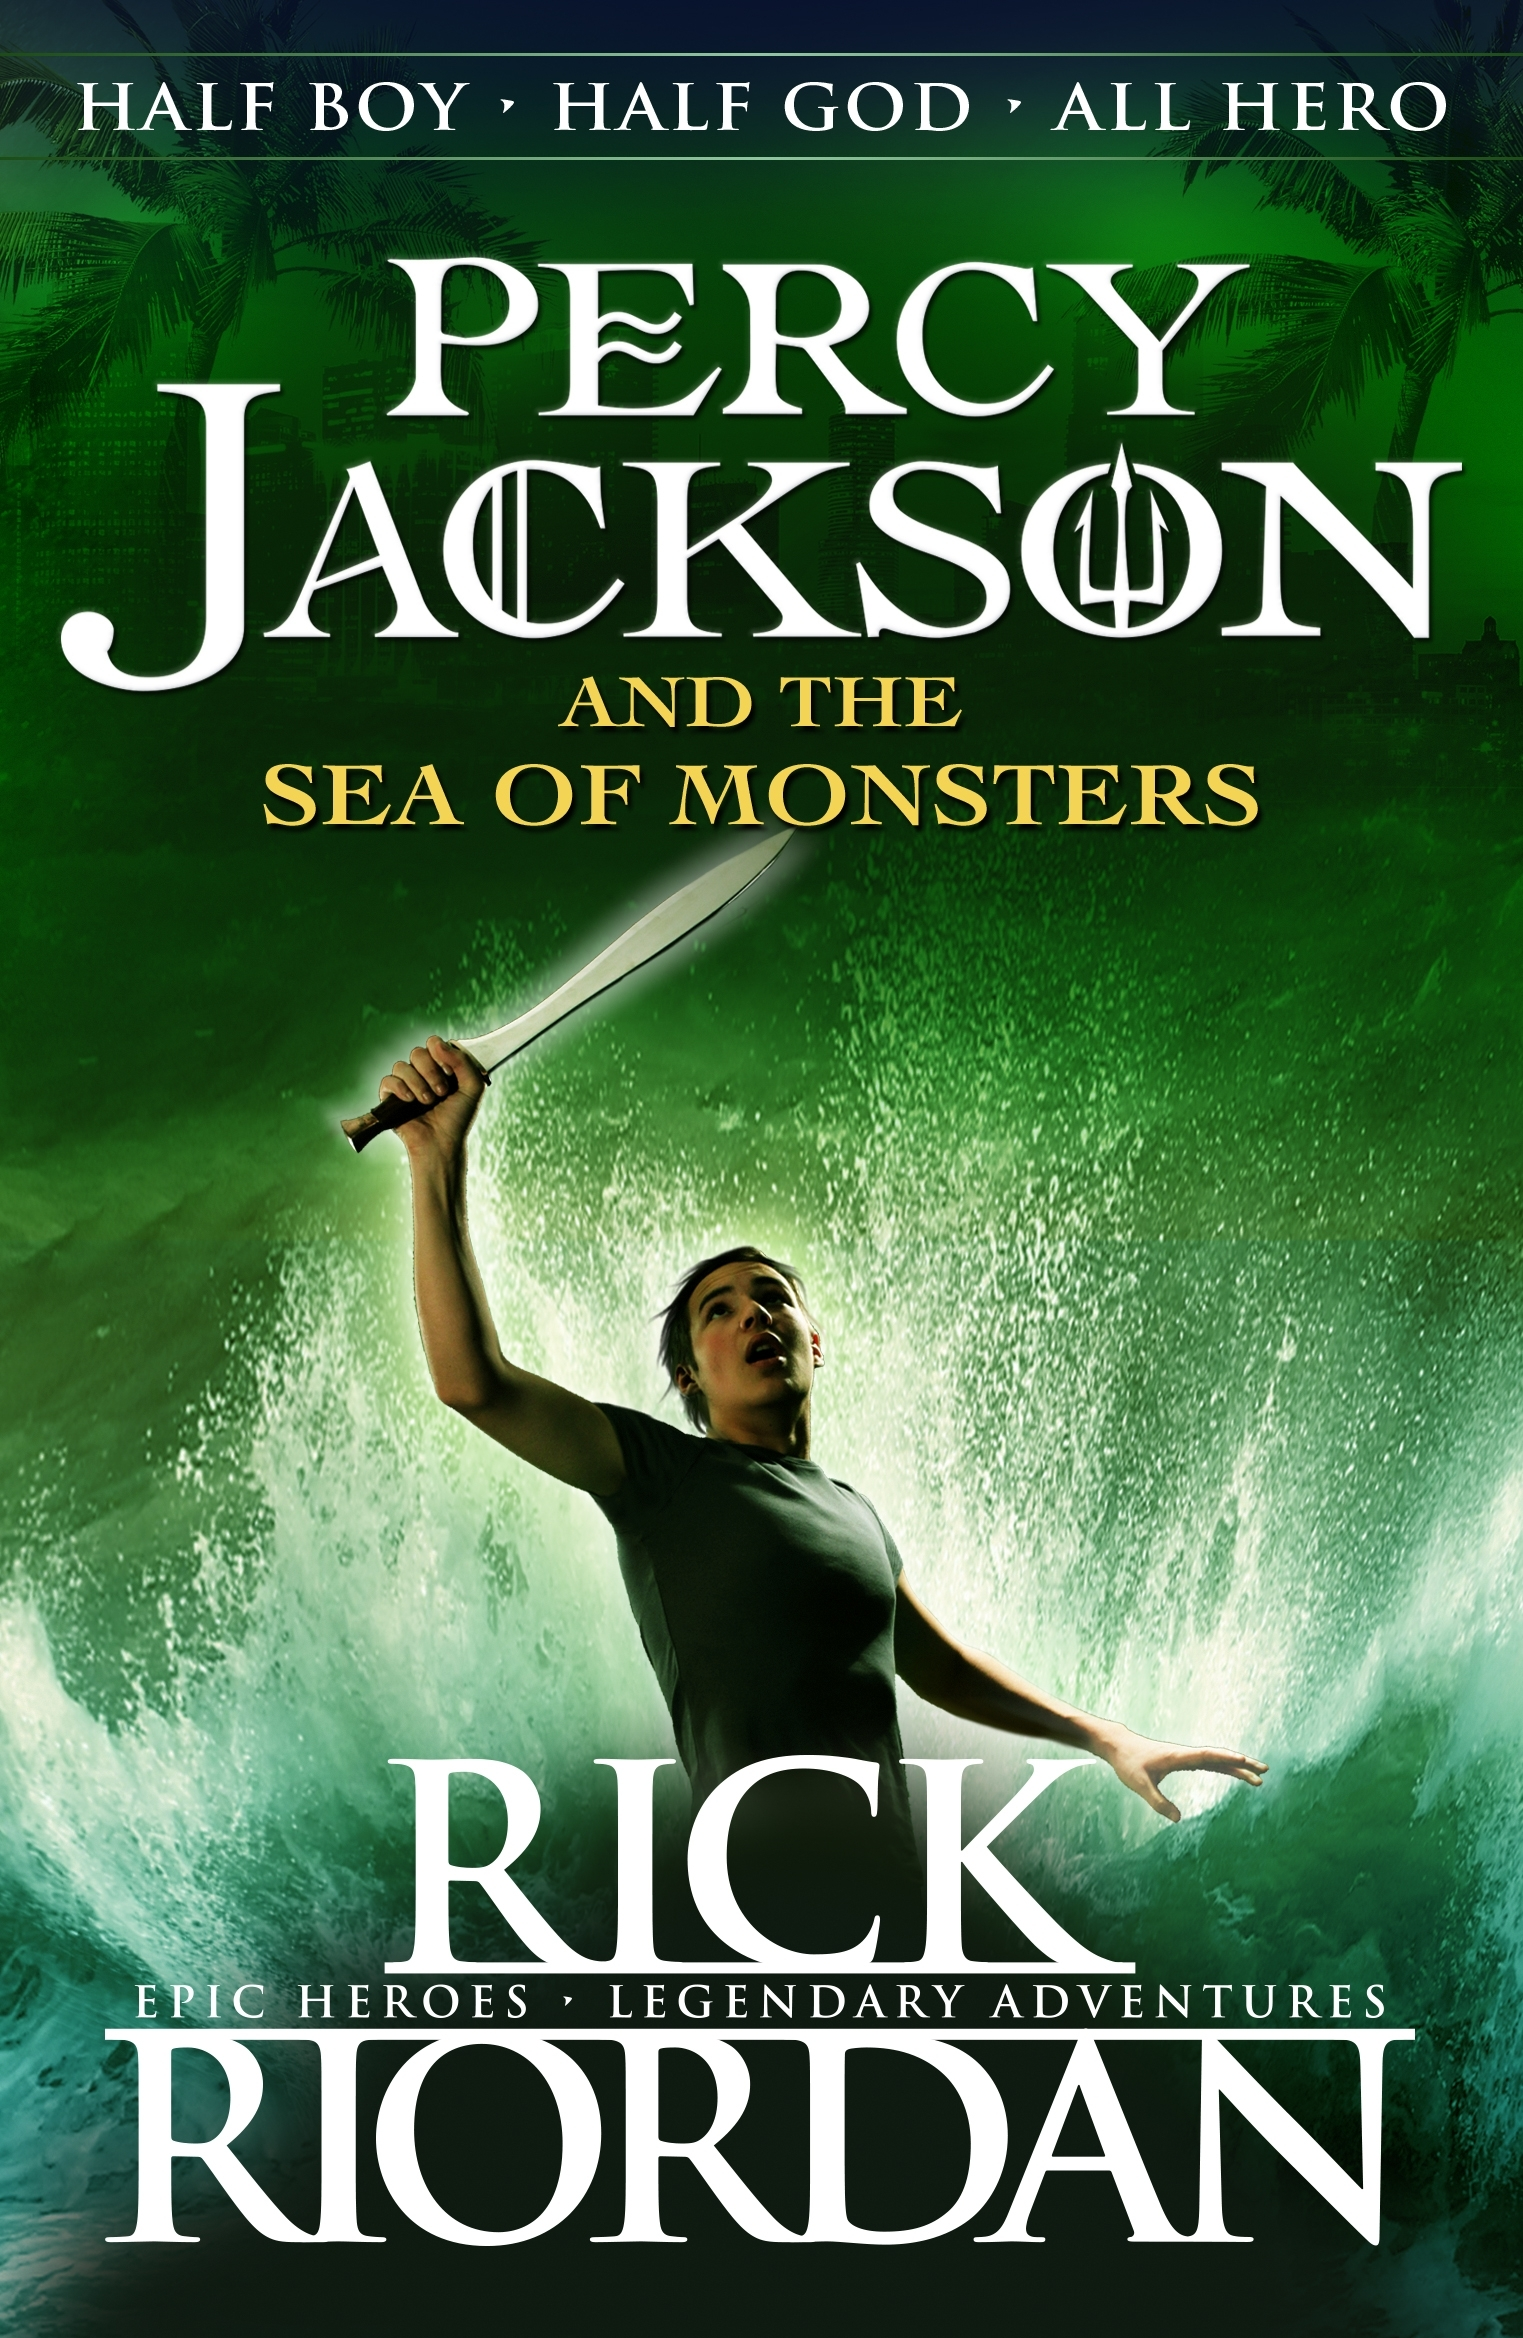 Original Penguin Book Covers : Percy jackson and the sea of monsters book by rick